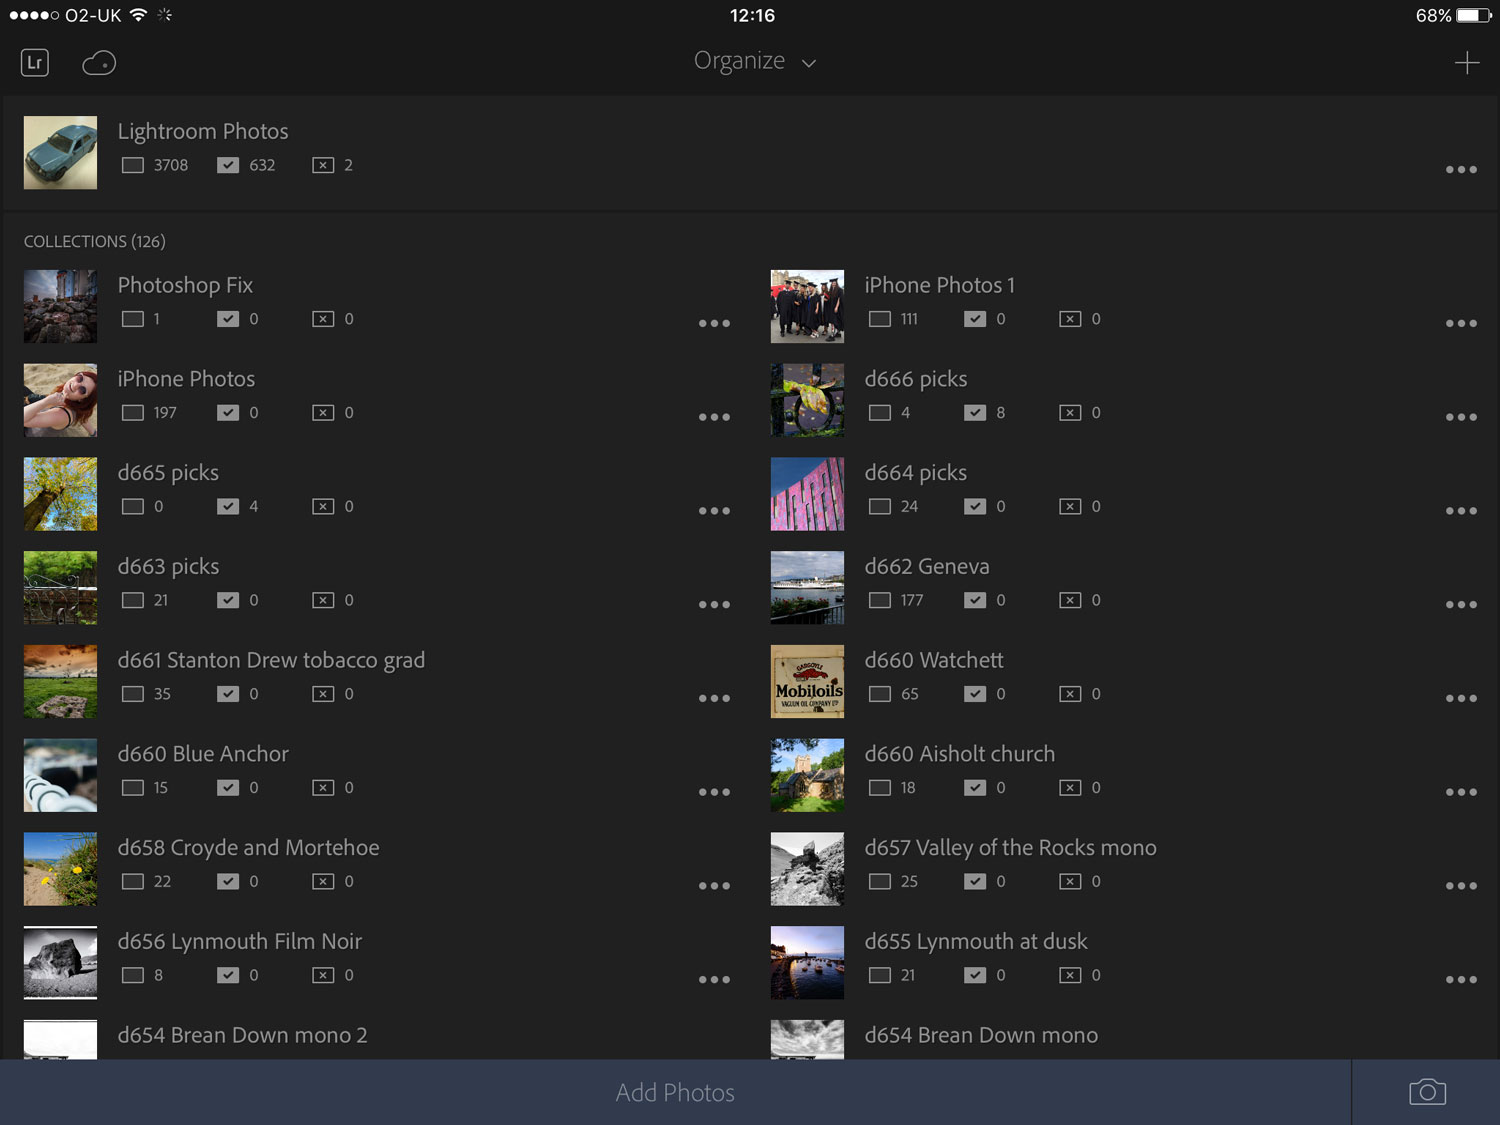 All your synced Collections will be visible in the Lightroom app on your mobile device.